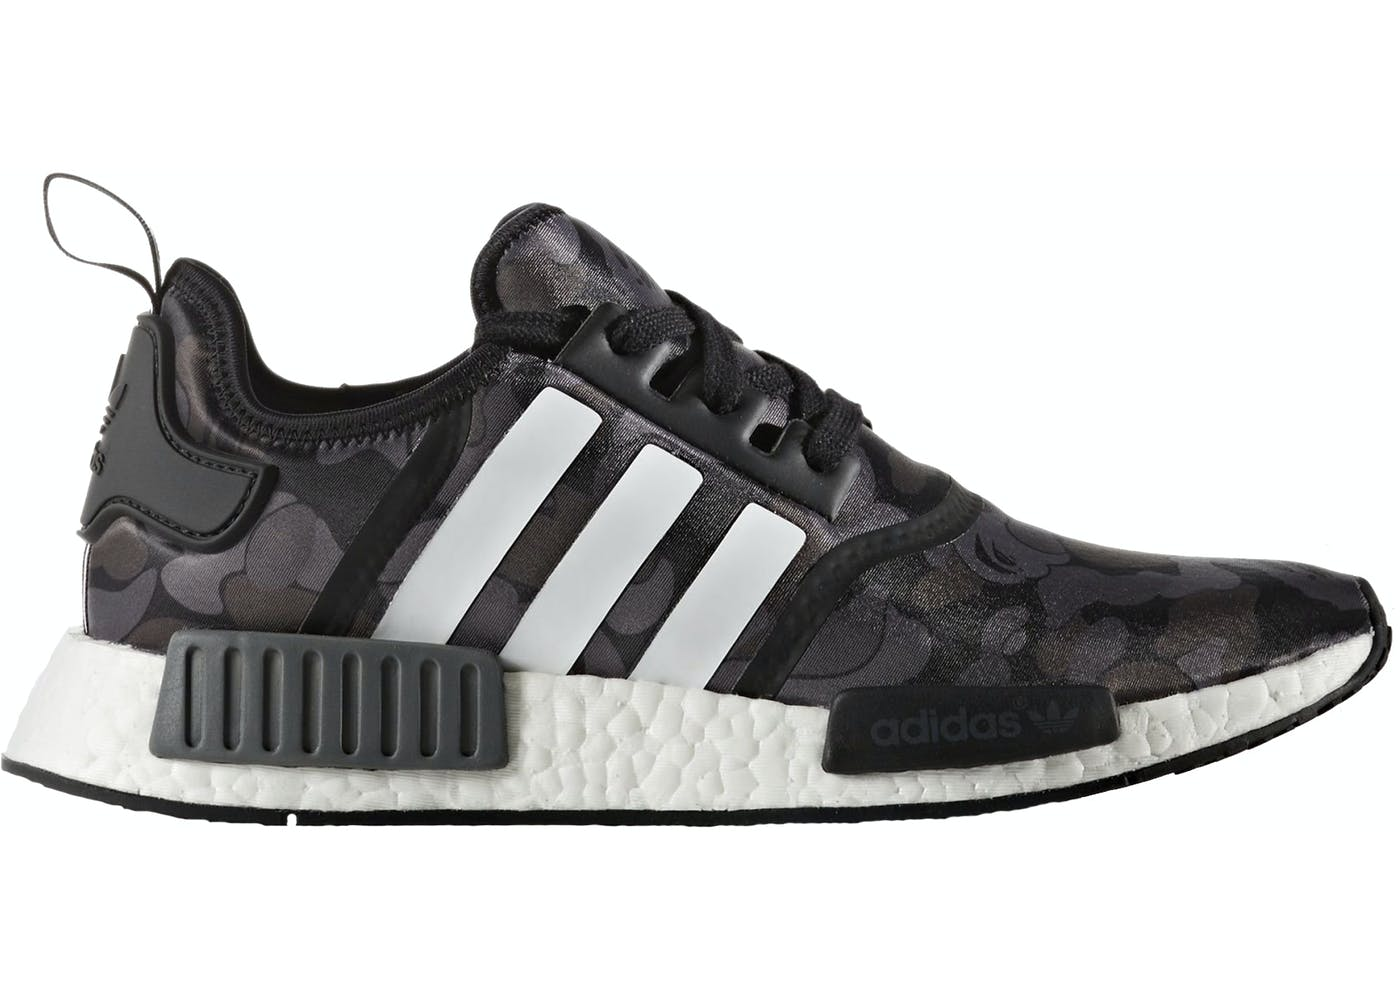 the best attitude 59c7e 4dd14 Cheap NMD R1 Shoes for Sale, Buy Cheap Adidas NMD R1 Boost O